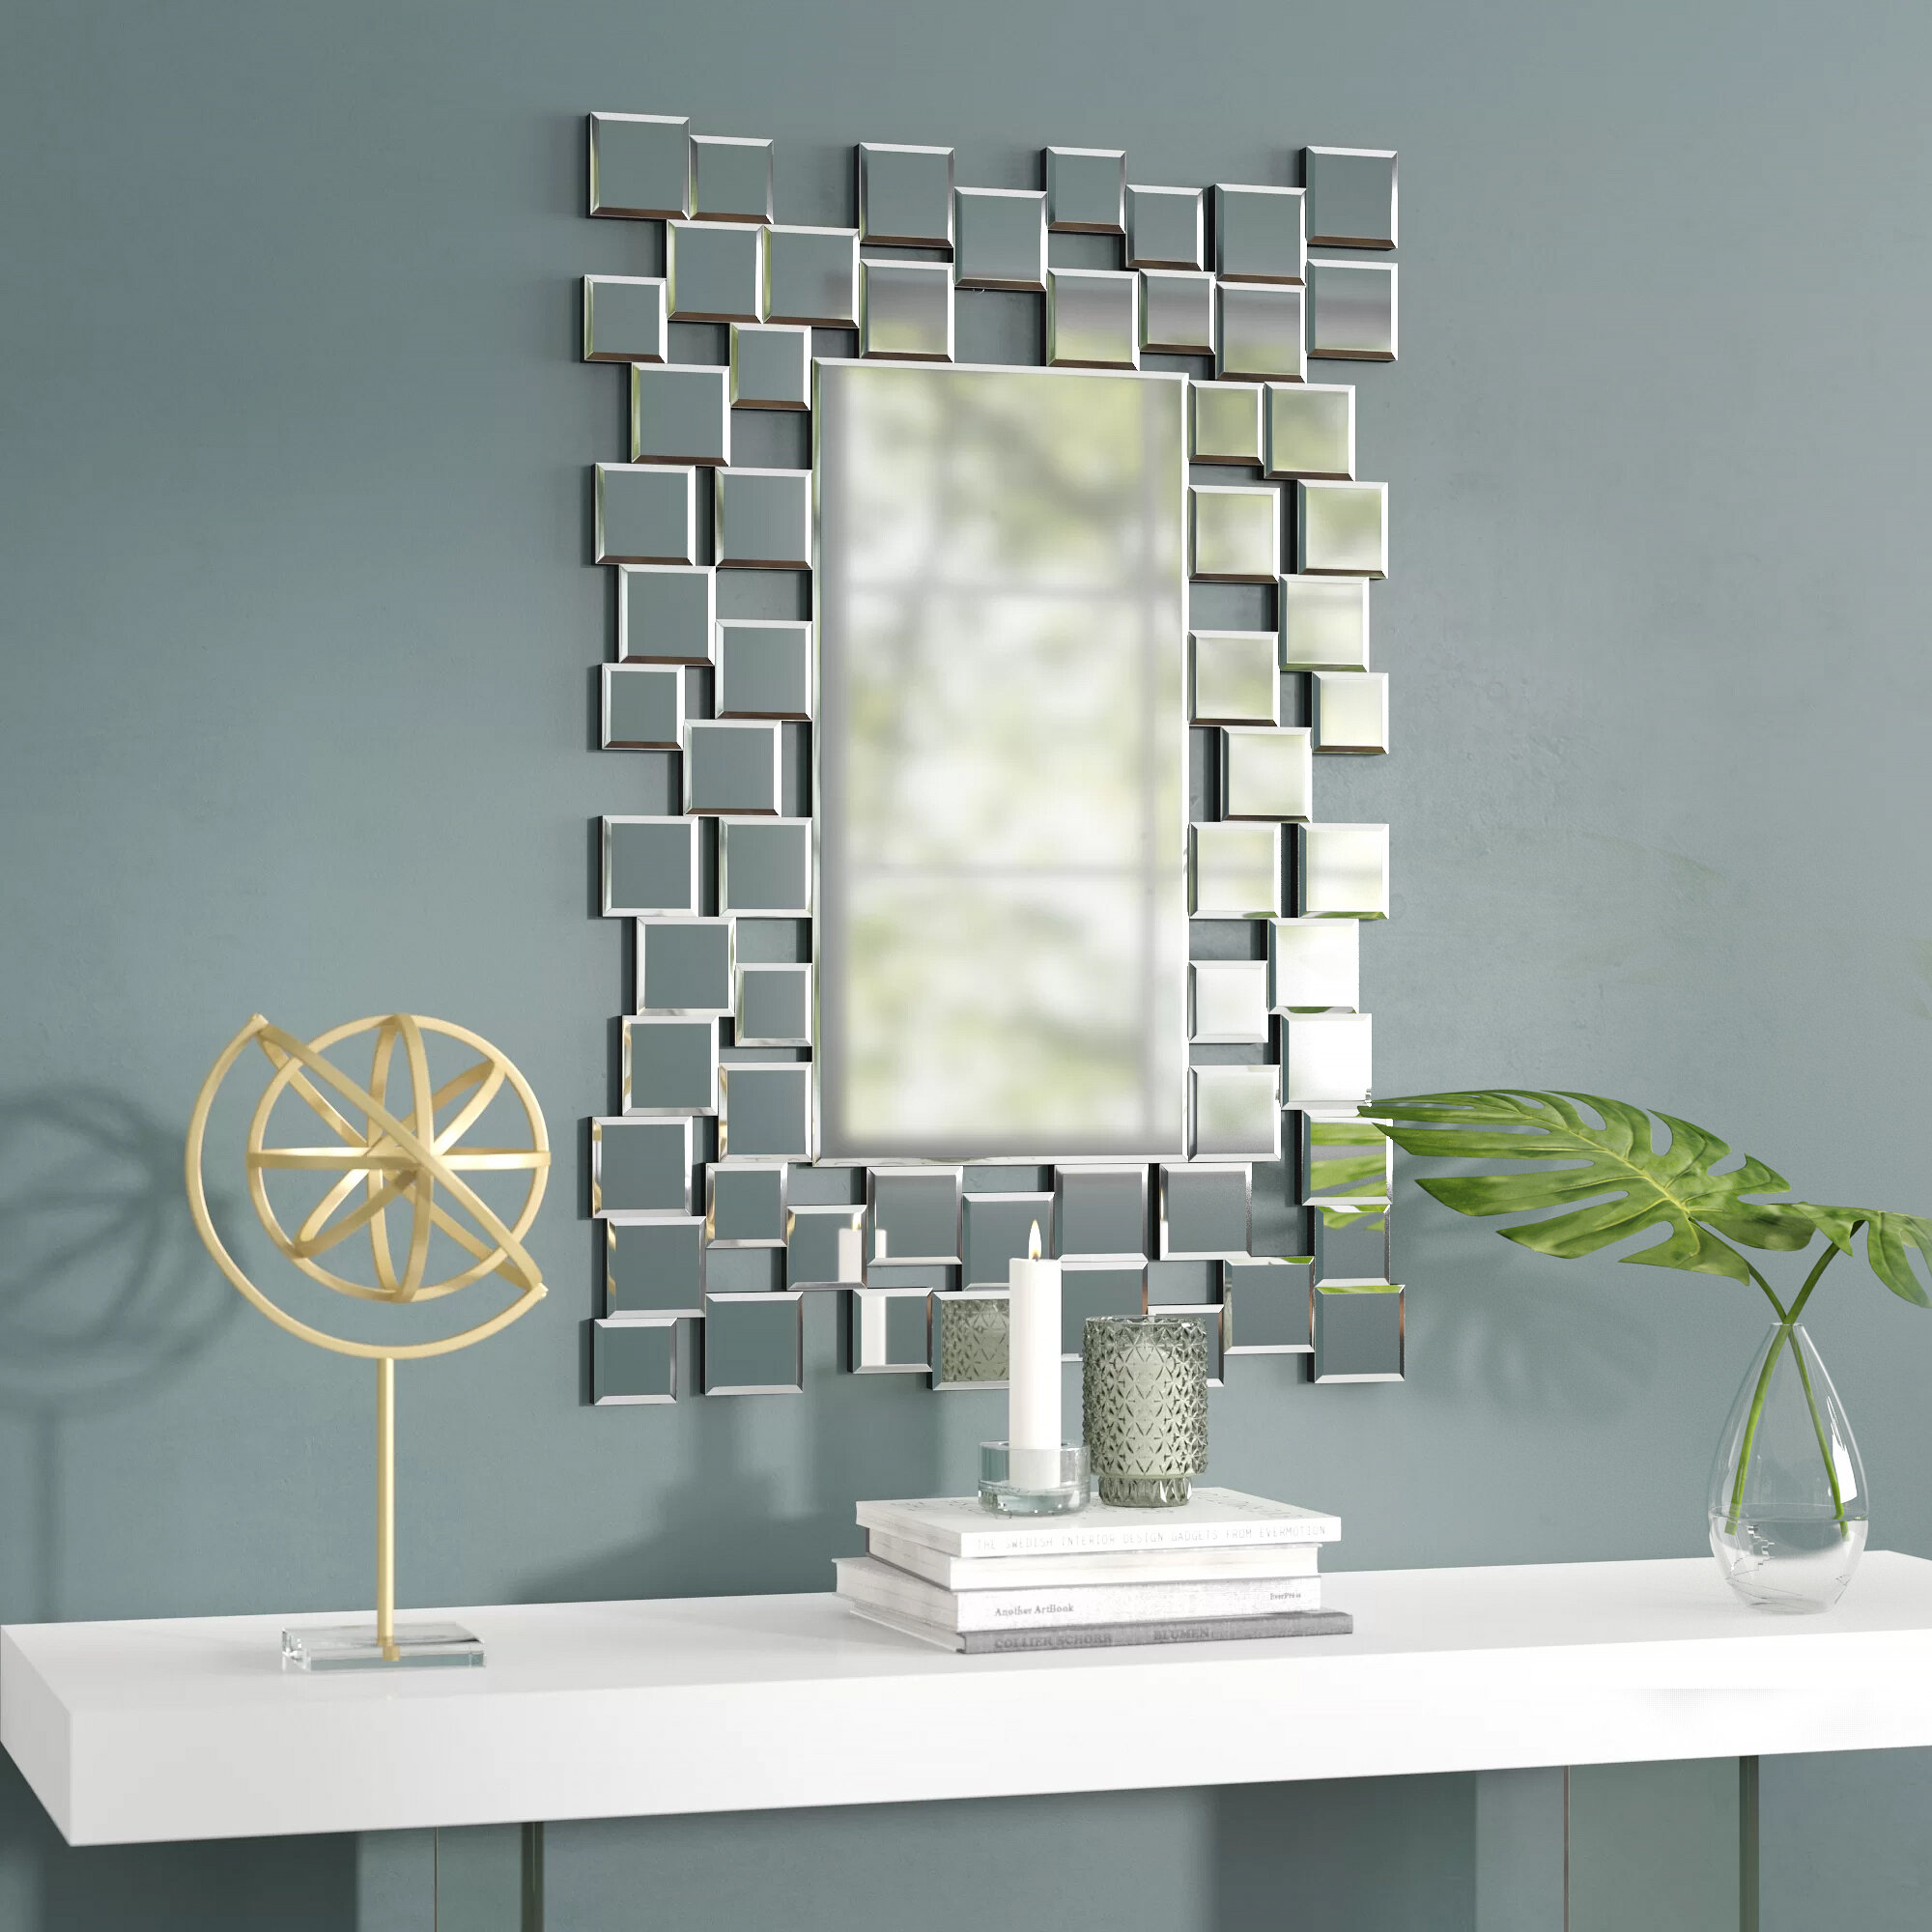 Broadmeadow Accent Wall Mirror | Wayfair Within Hussain Tile Accent Wall Mirrors (Image 9 of 20)